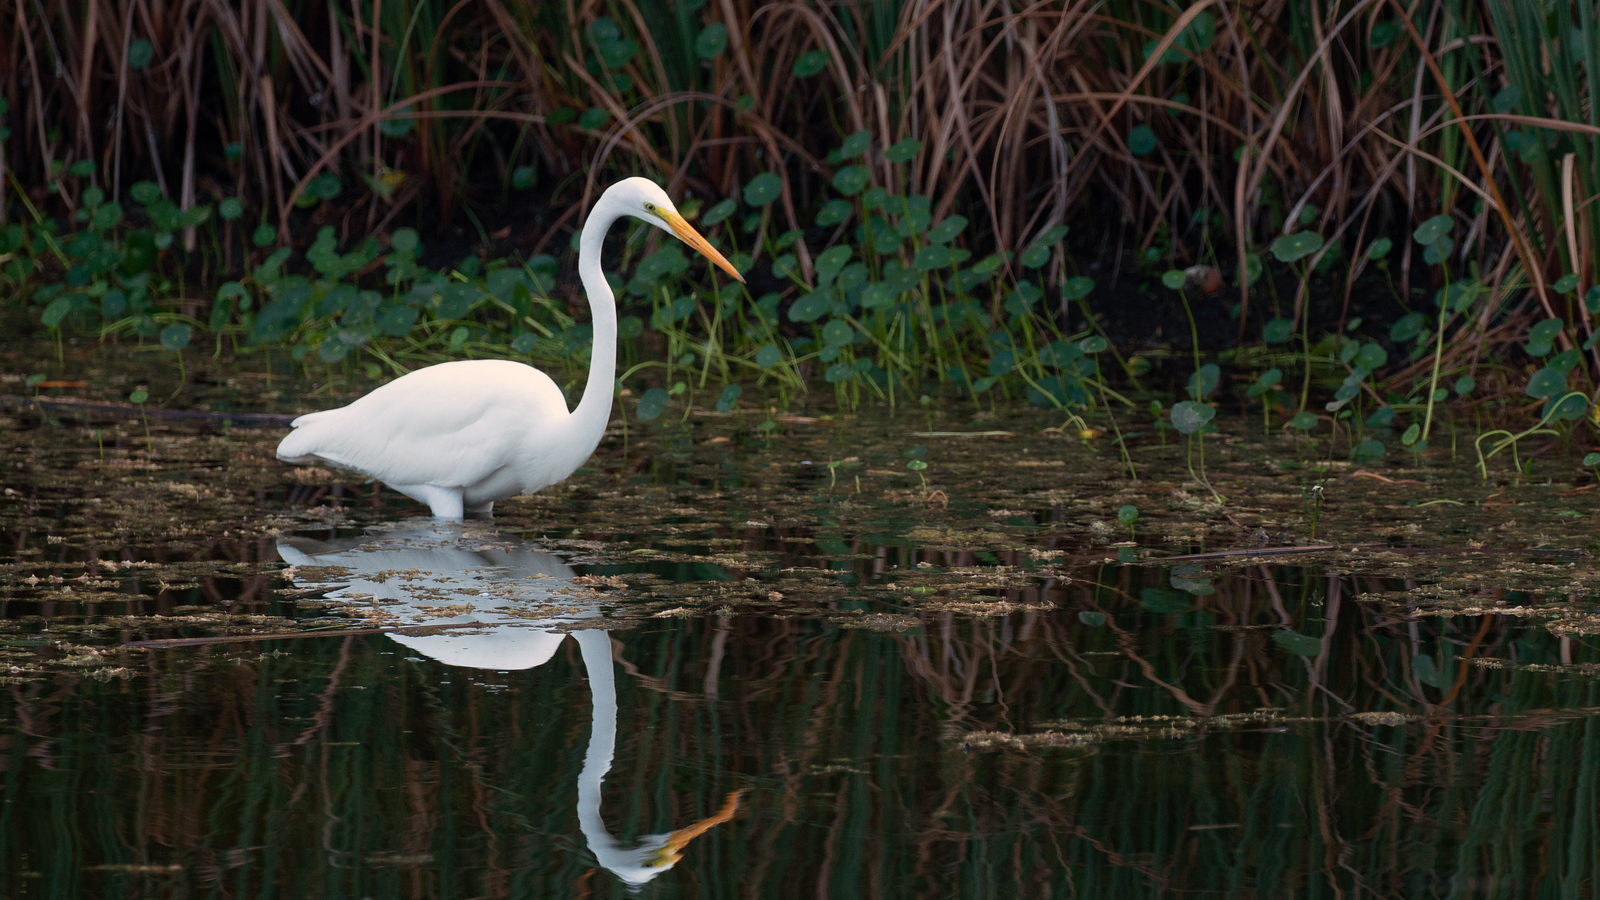 Photograph of a Great Egret